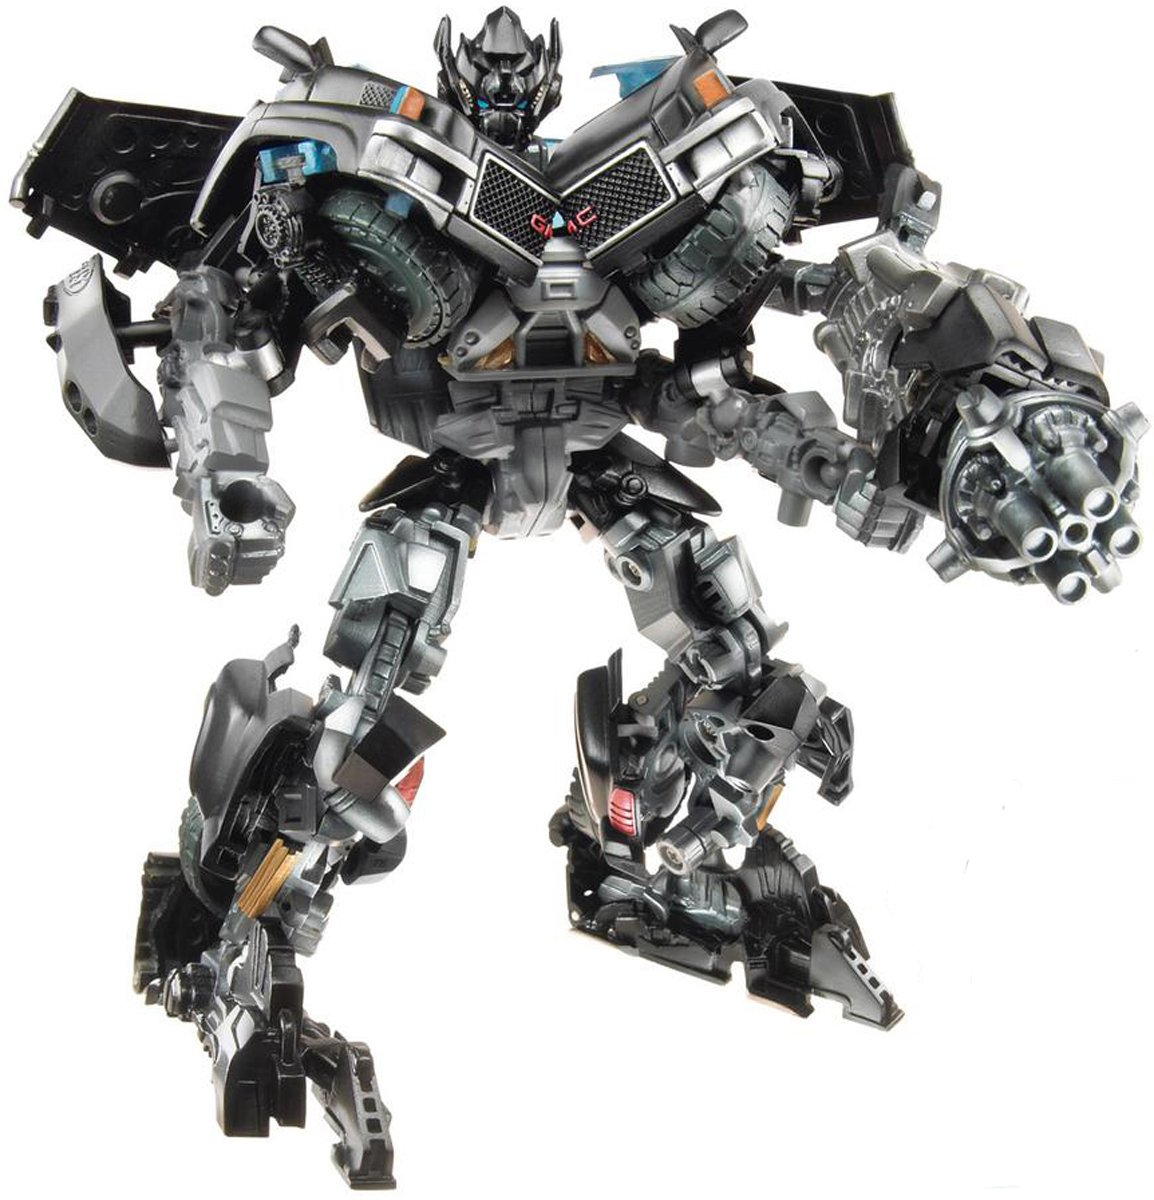 Transformers 3 Dark of The Moon: Ironhide and Sideswipe vs The ...